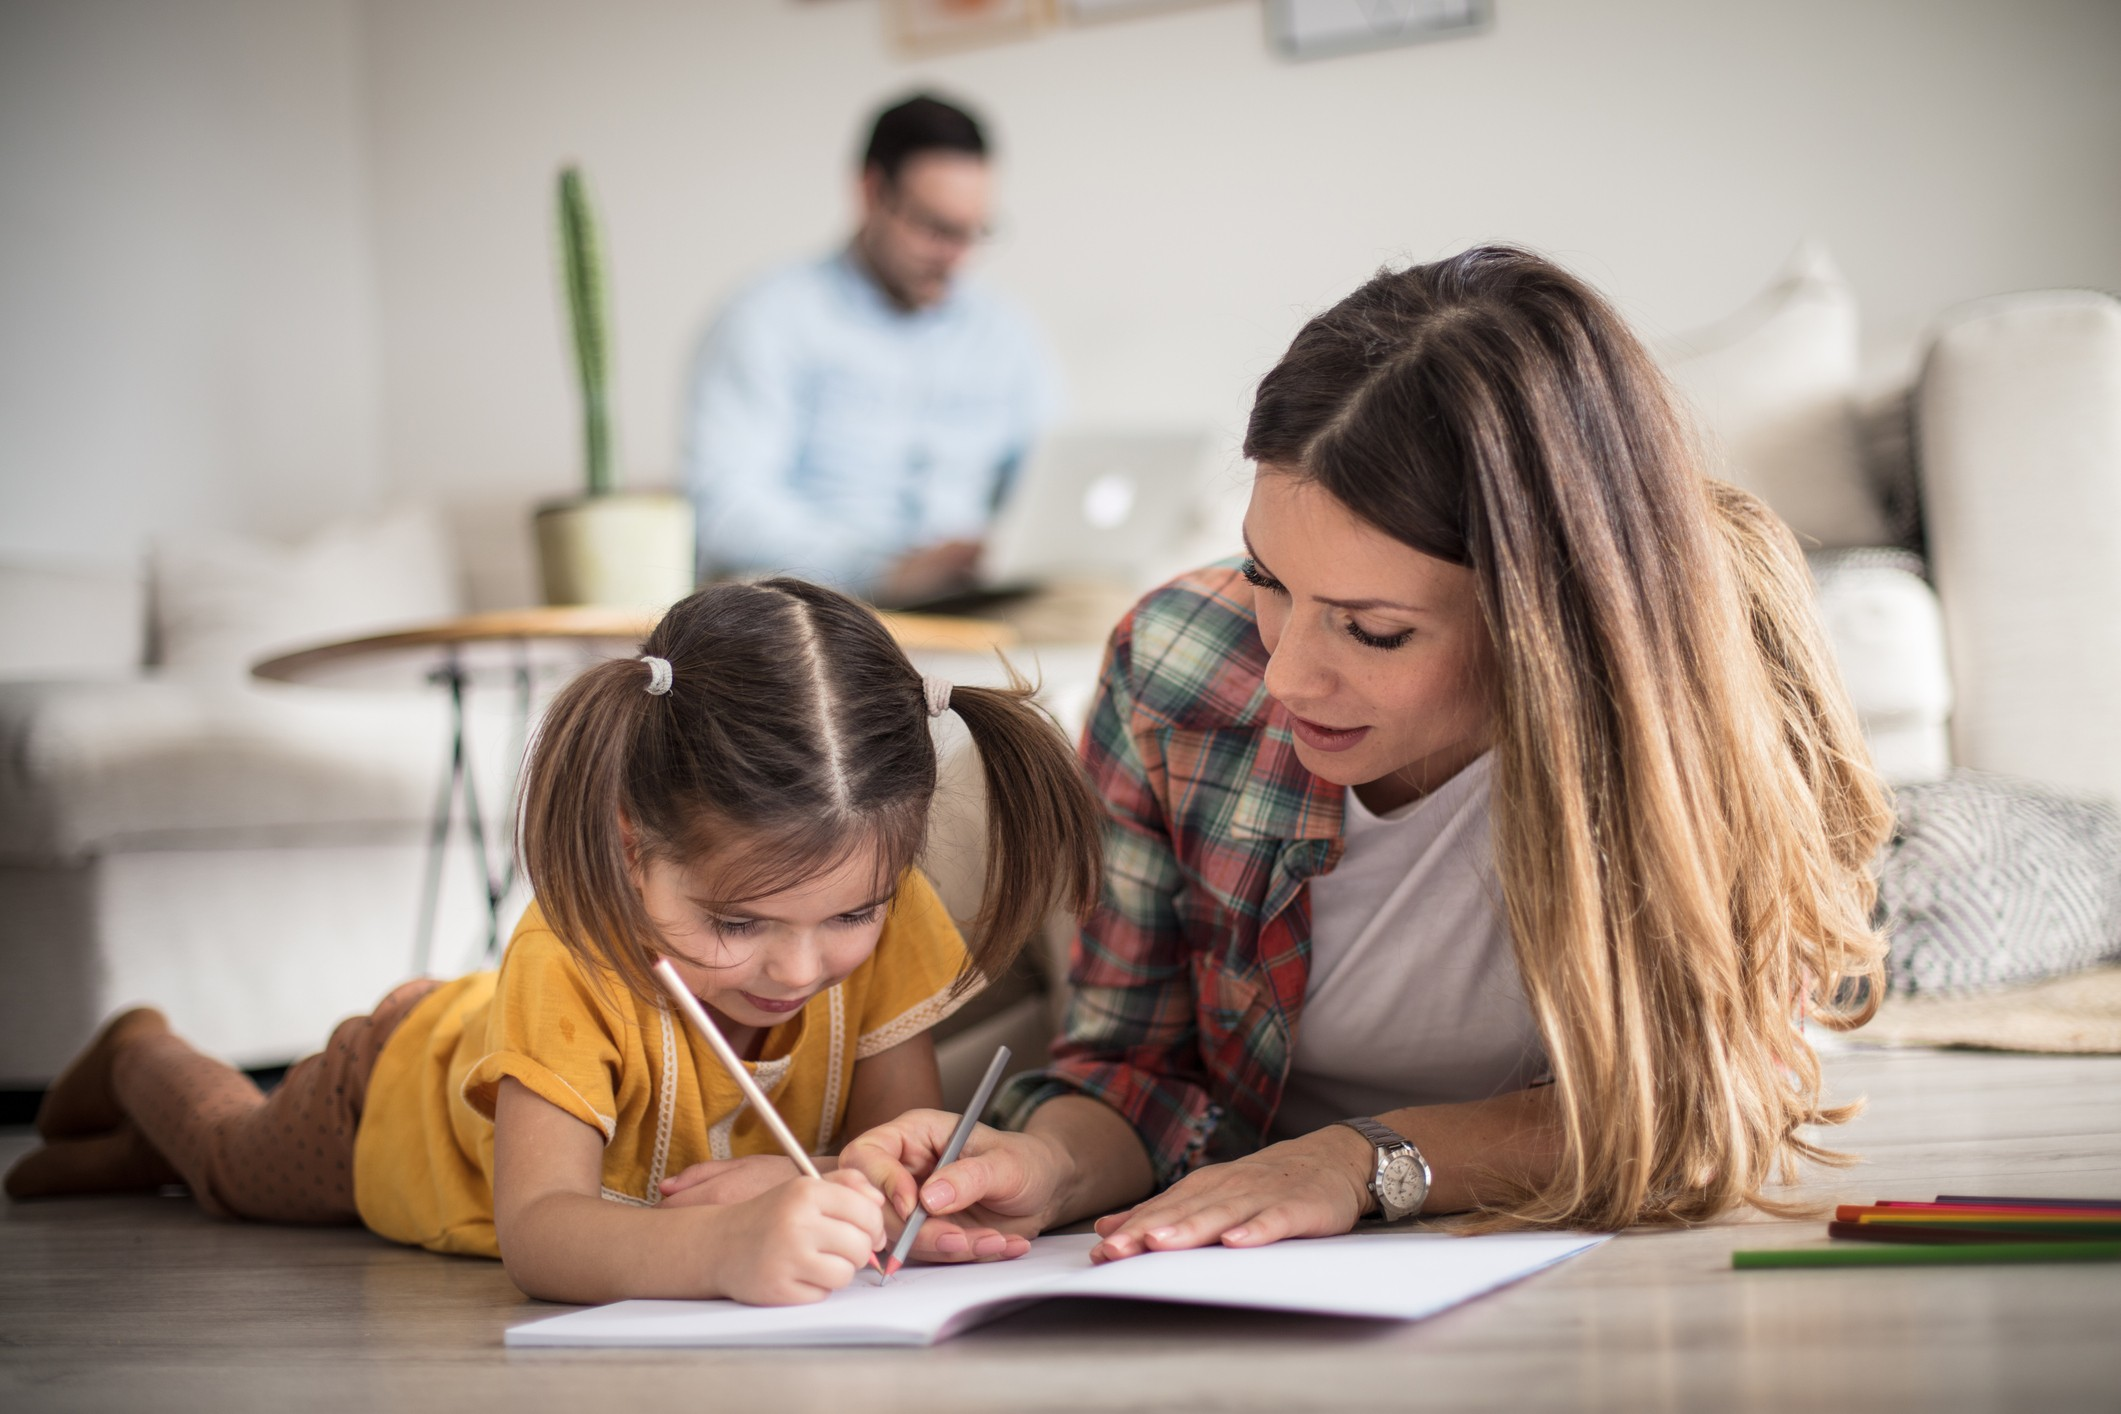 Mom helping her young daughter write notes in a notebook.